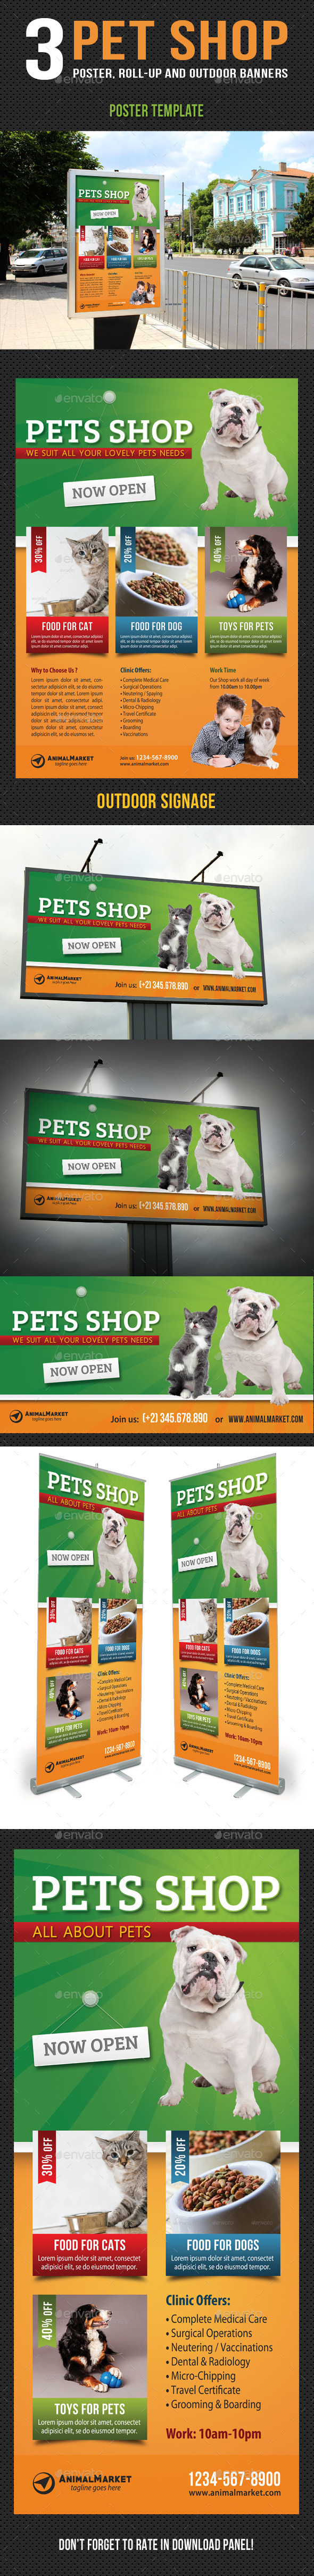 3 in 1 Pet Shop Poster and Banner Templates Bundle - Signage Print Templates